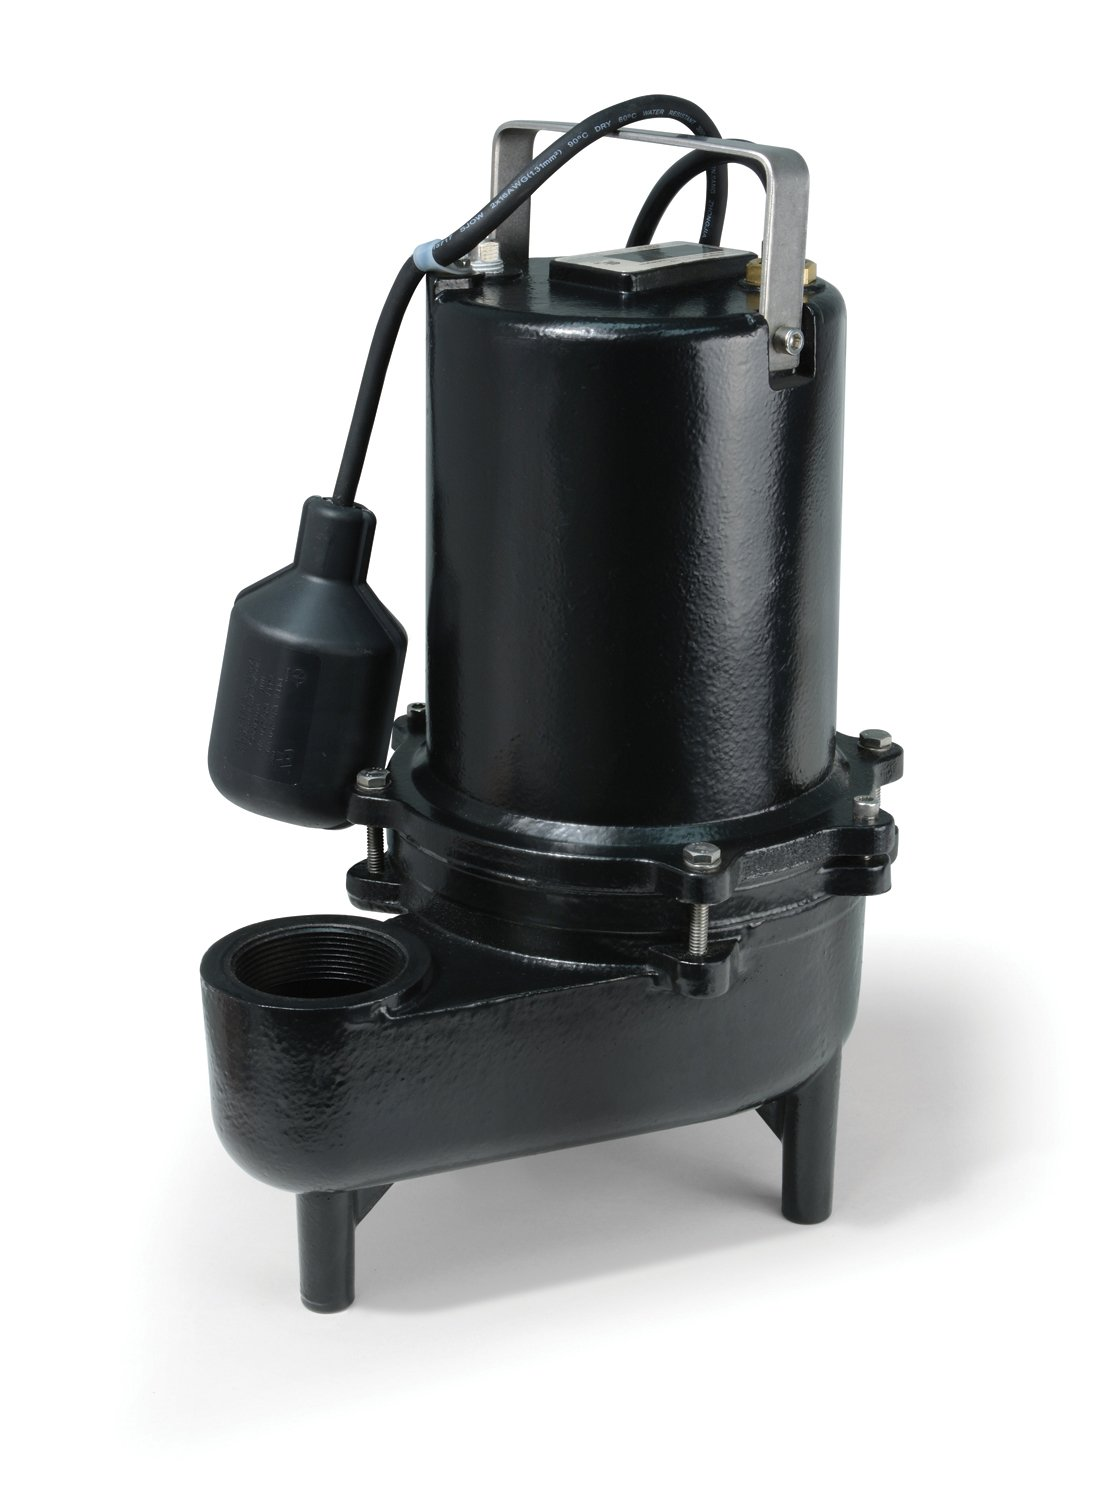 ECO-FLO Products ESE50W Cast Iron Sewage Pump with Wide Angle Switch, 1/2 HP, 7,800 GPH by ECO-FLO PRODUCTS INCORPORATED